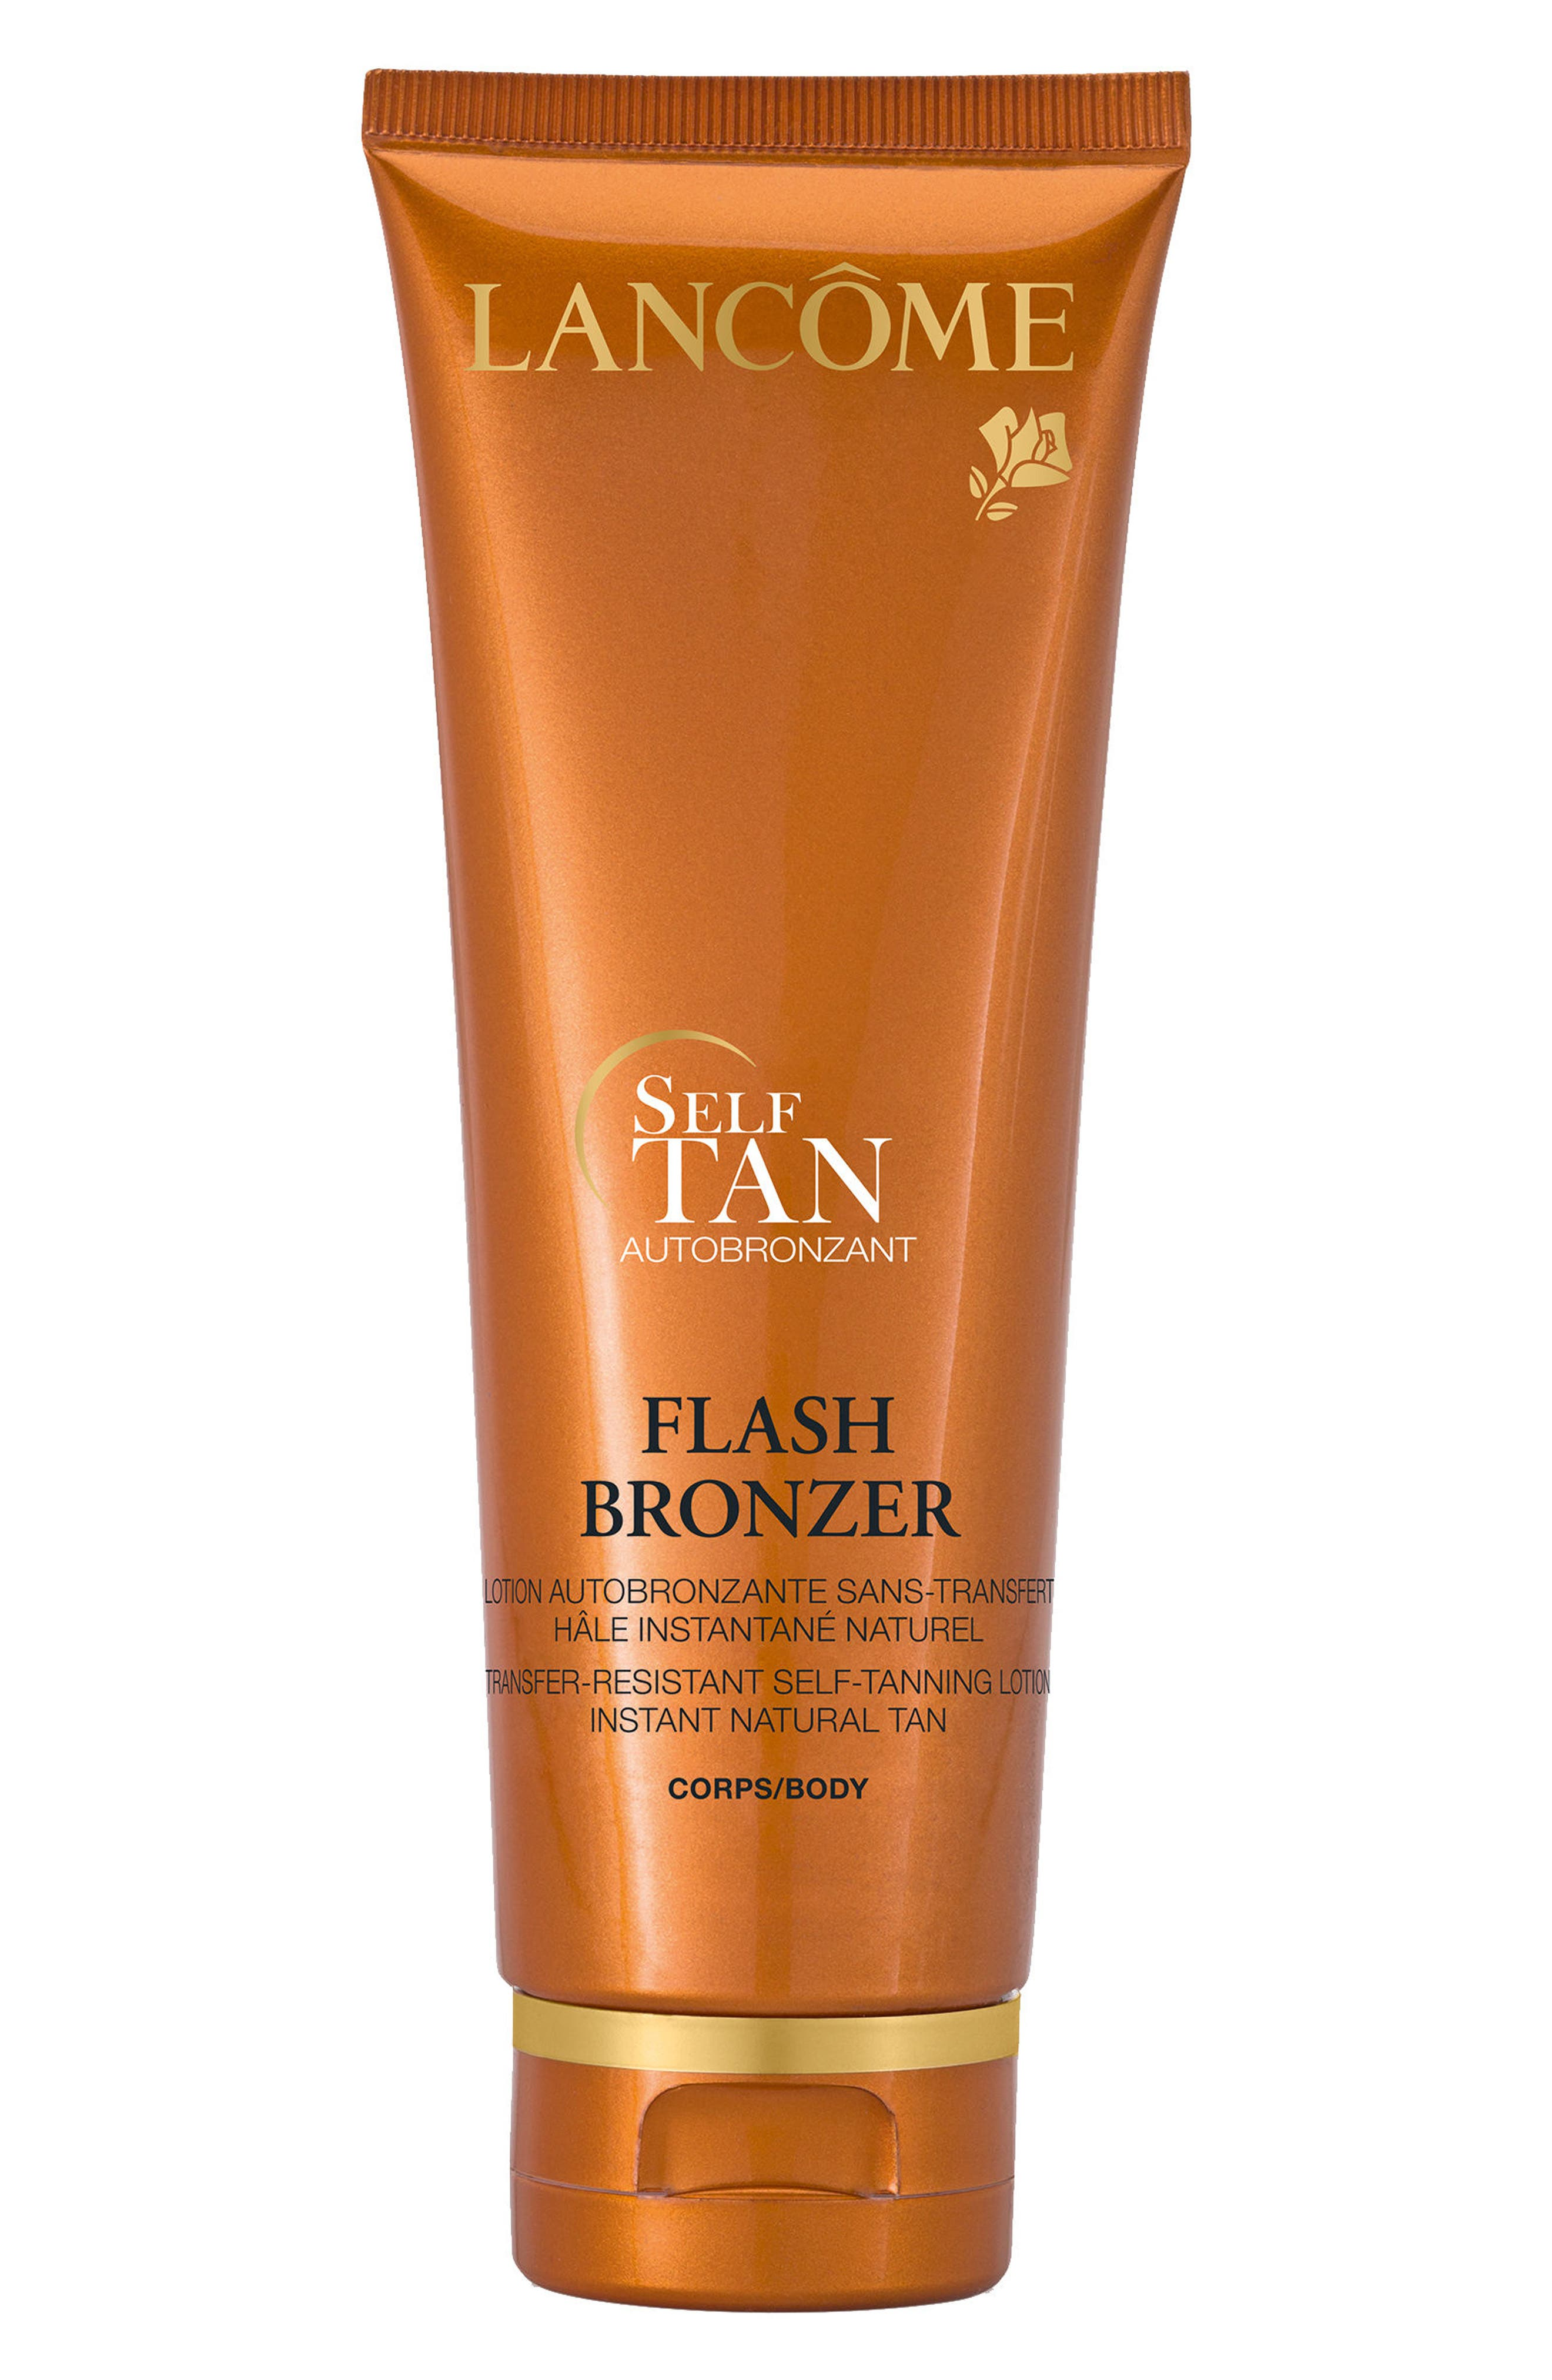 Alternate Image 1 Selected - Lancôme Flash Bronzer Tinted Self-Tanning Gel with Pure Vitamin E